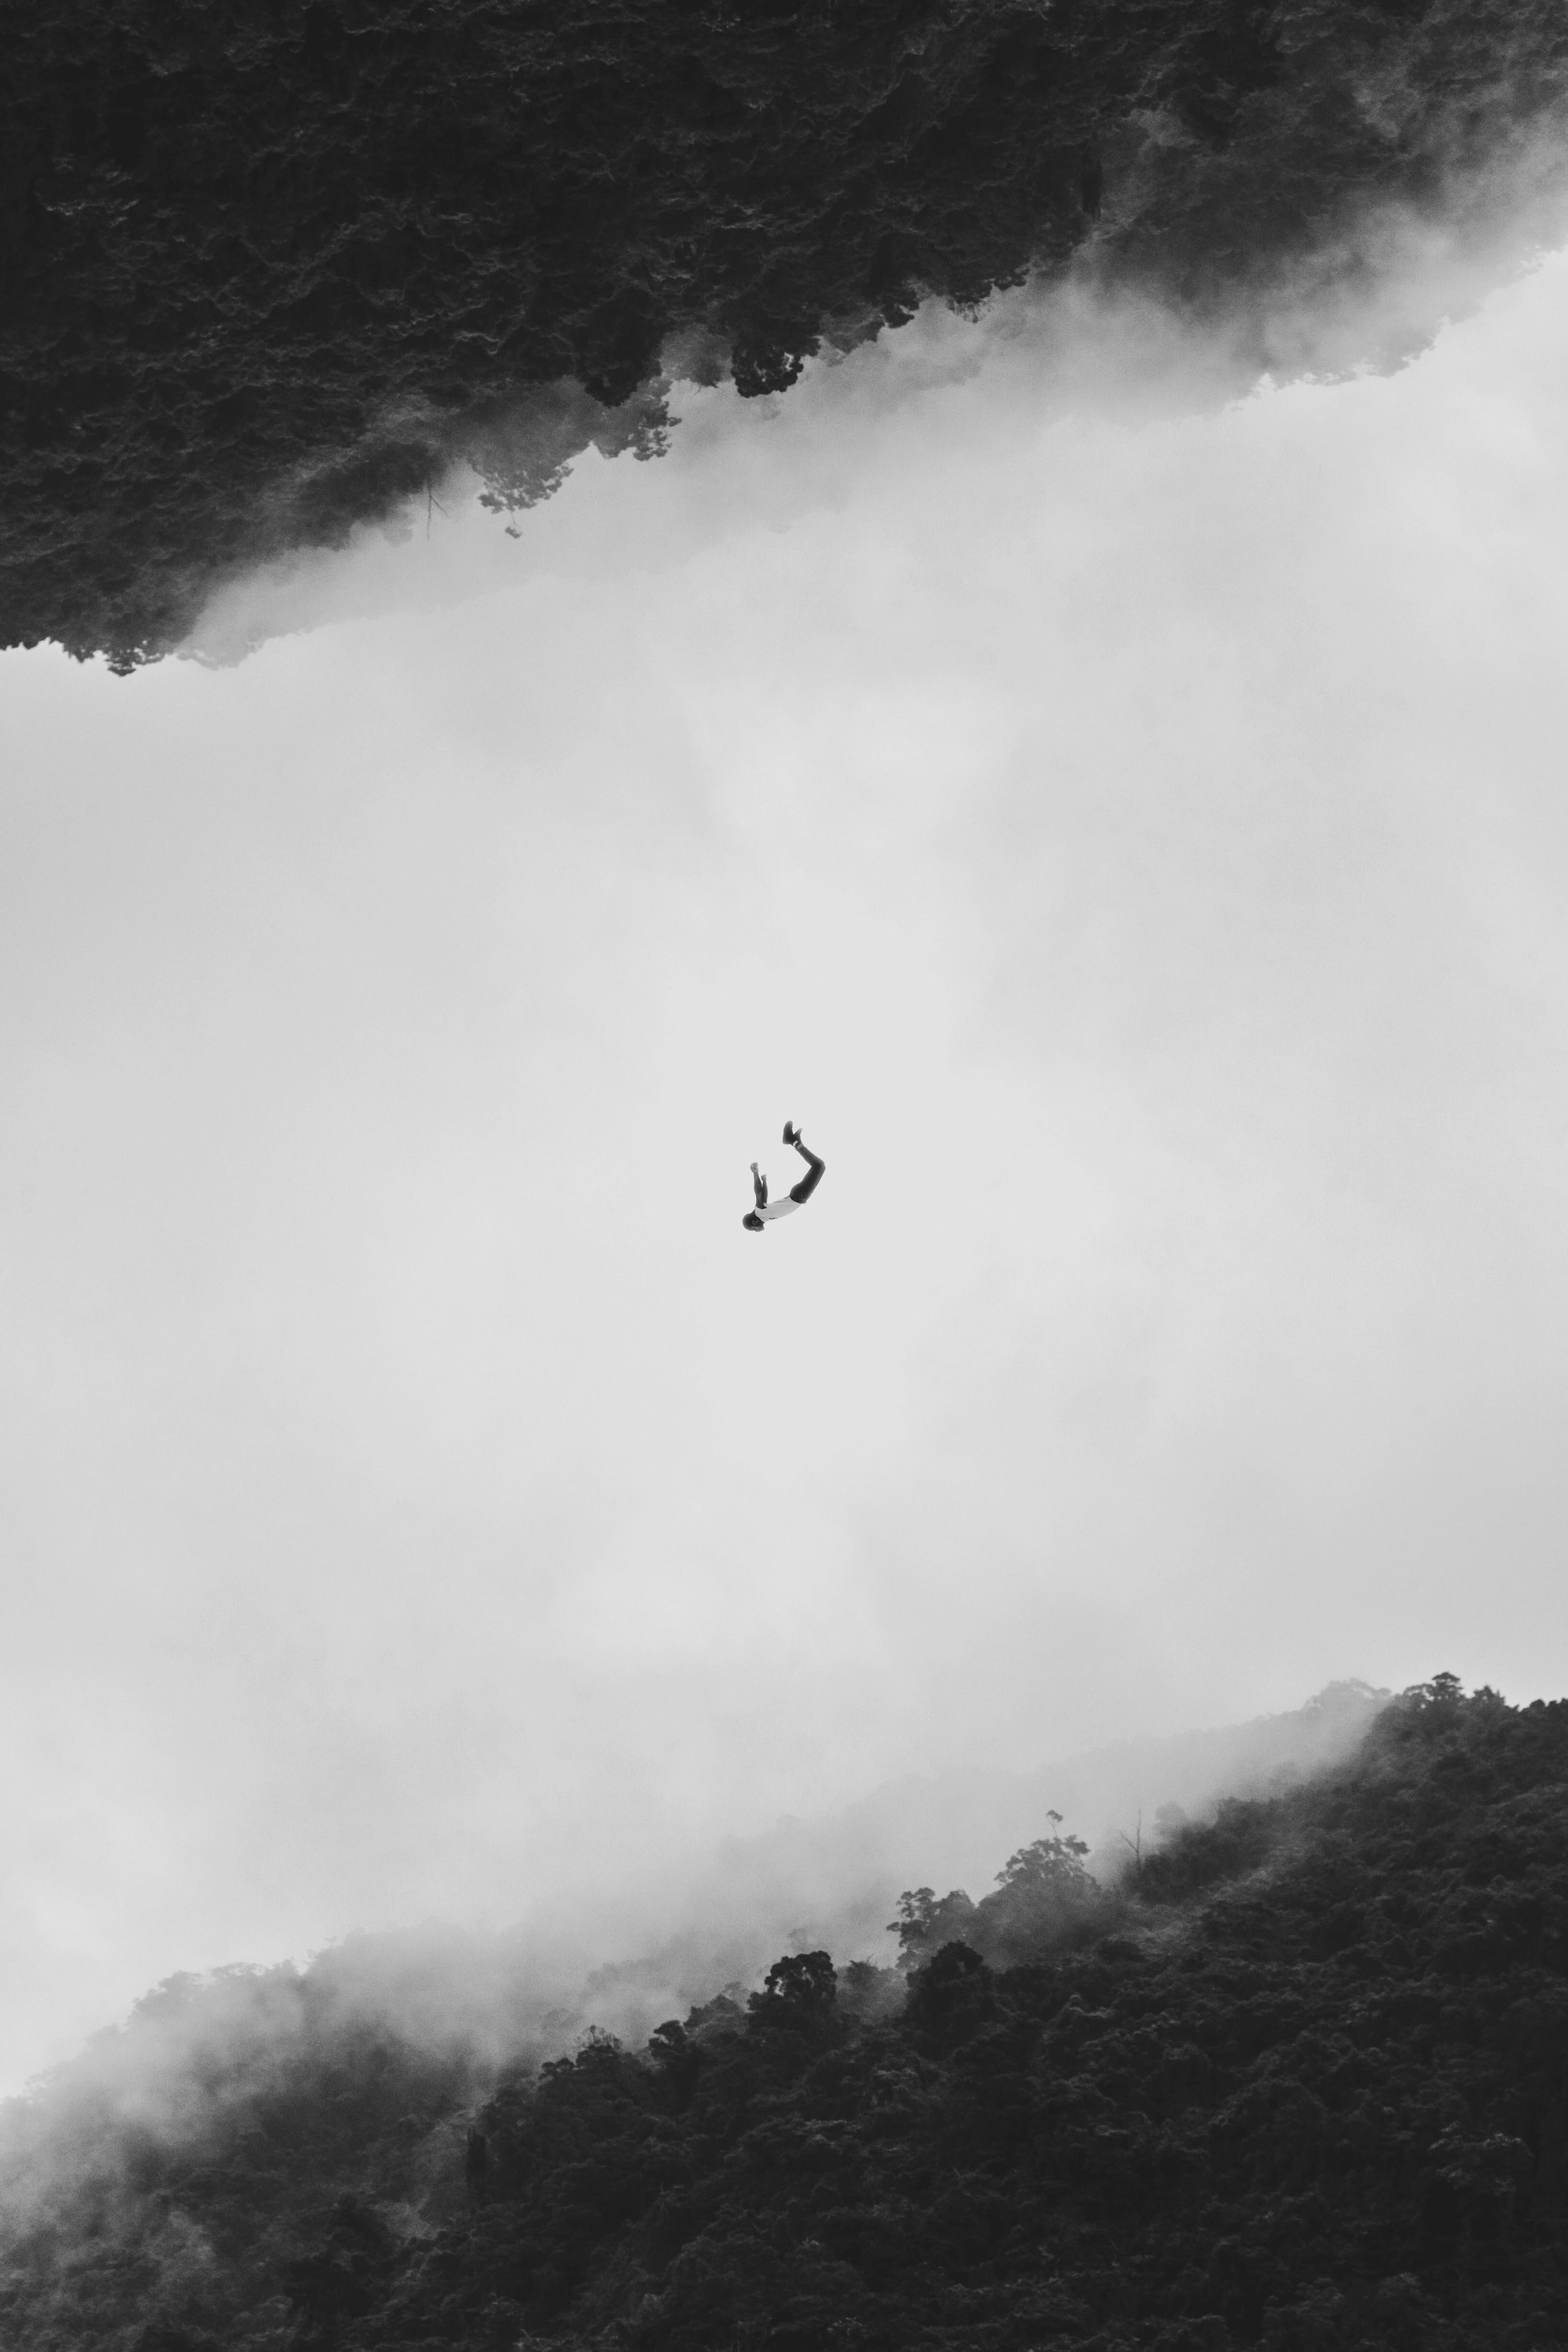 alone-black-and-white-clouds-1793525.jpg